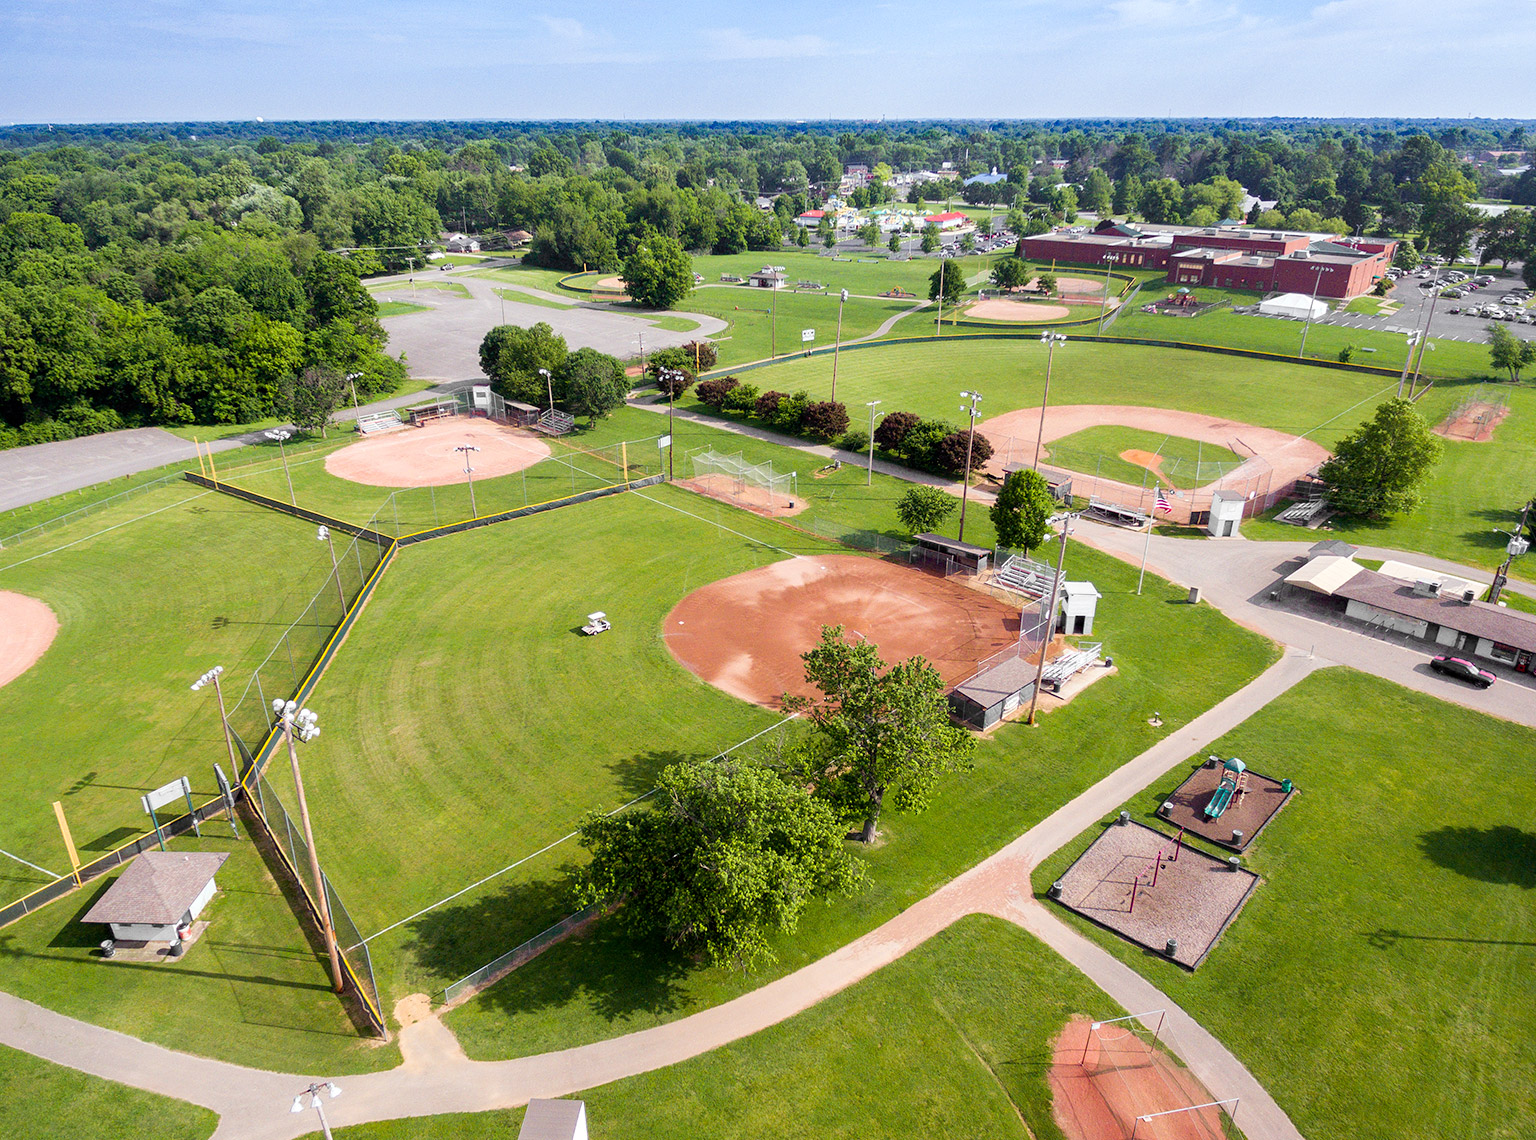 Urban recreational park aerial view 2 in Louisville with ball fields